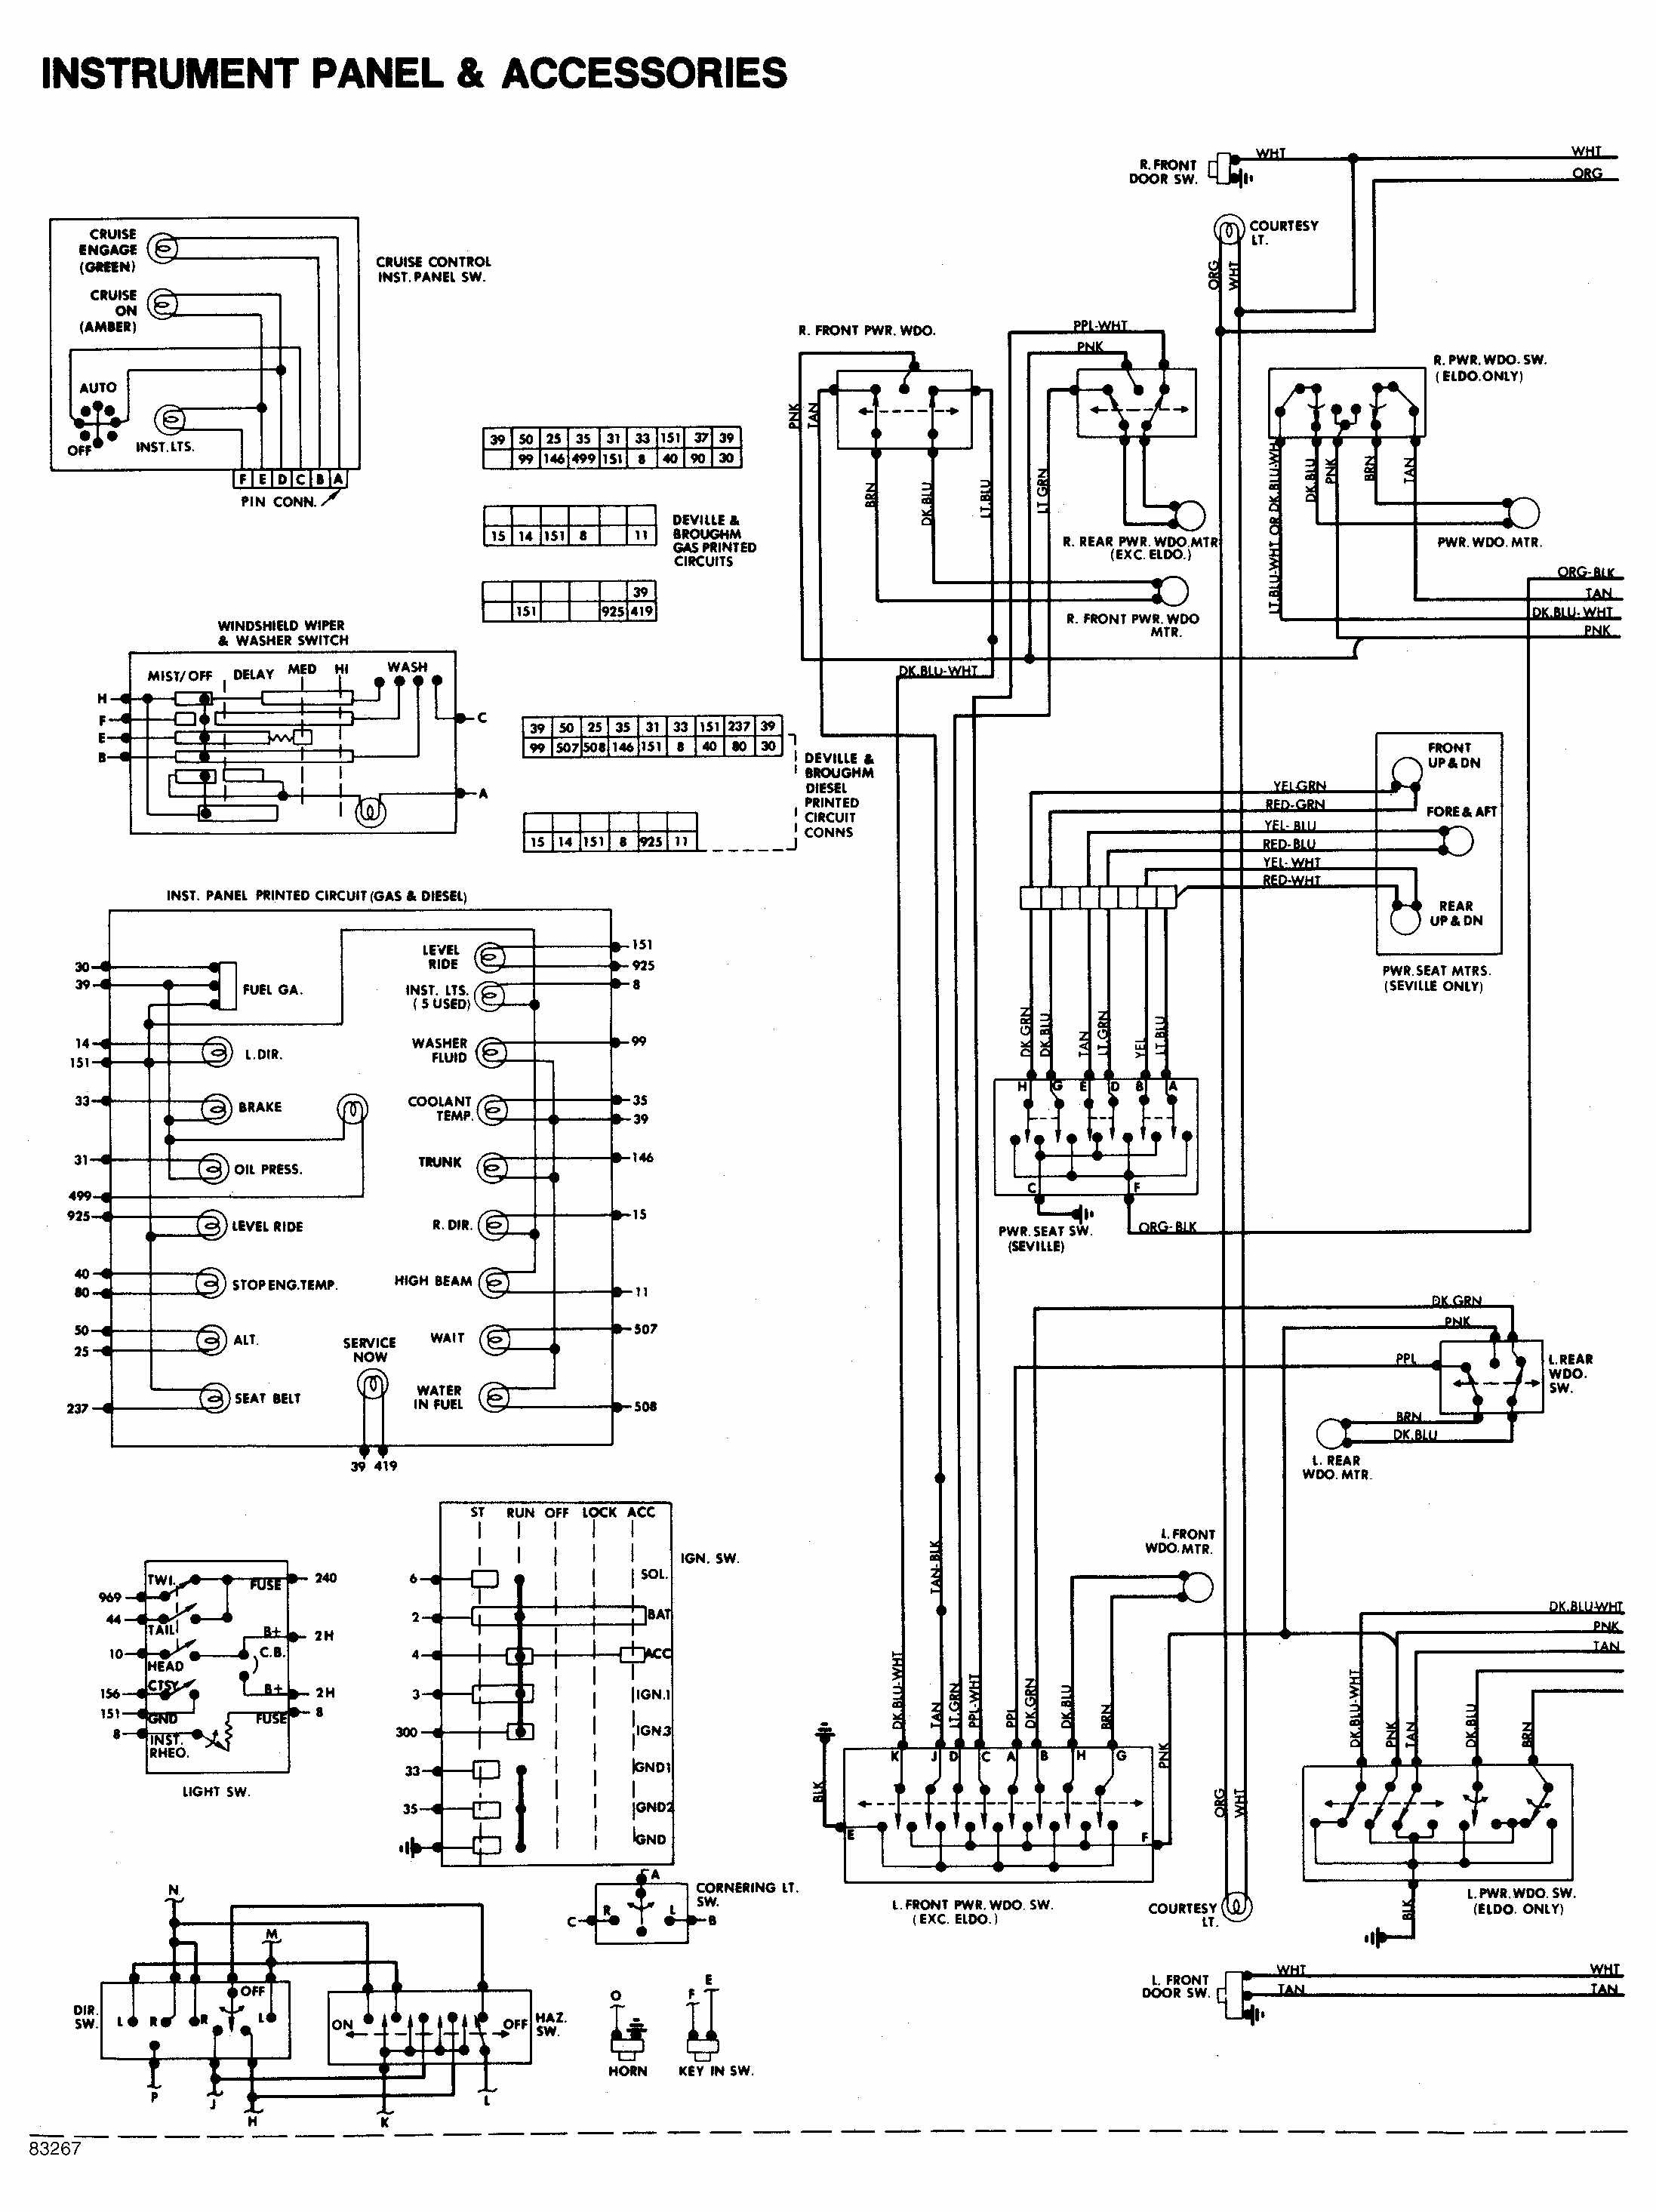 2006 Ford Mustang Fuel Pump Wiring Diagram Kia Venga Wiring Diagram For Wiring Diagram Schematics